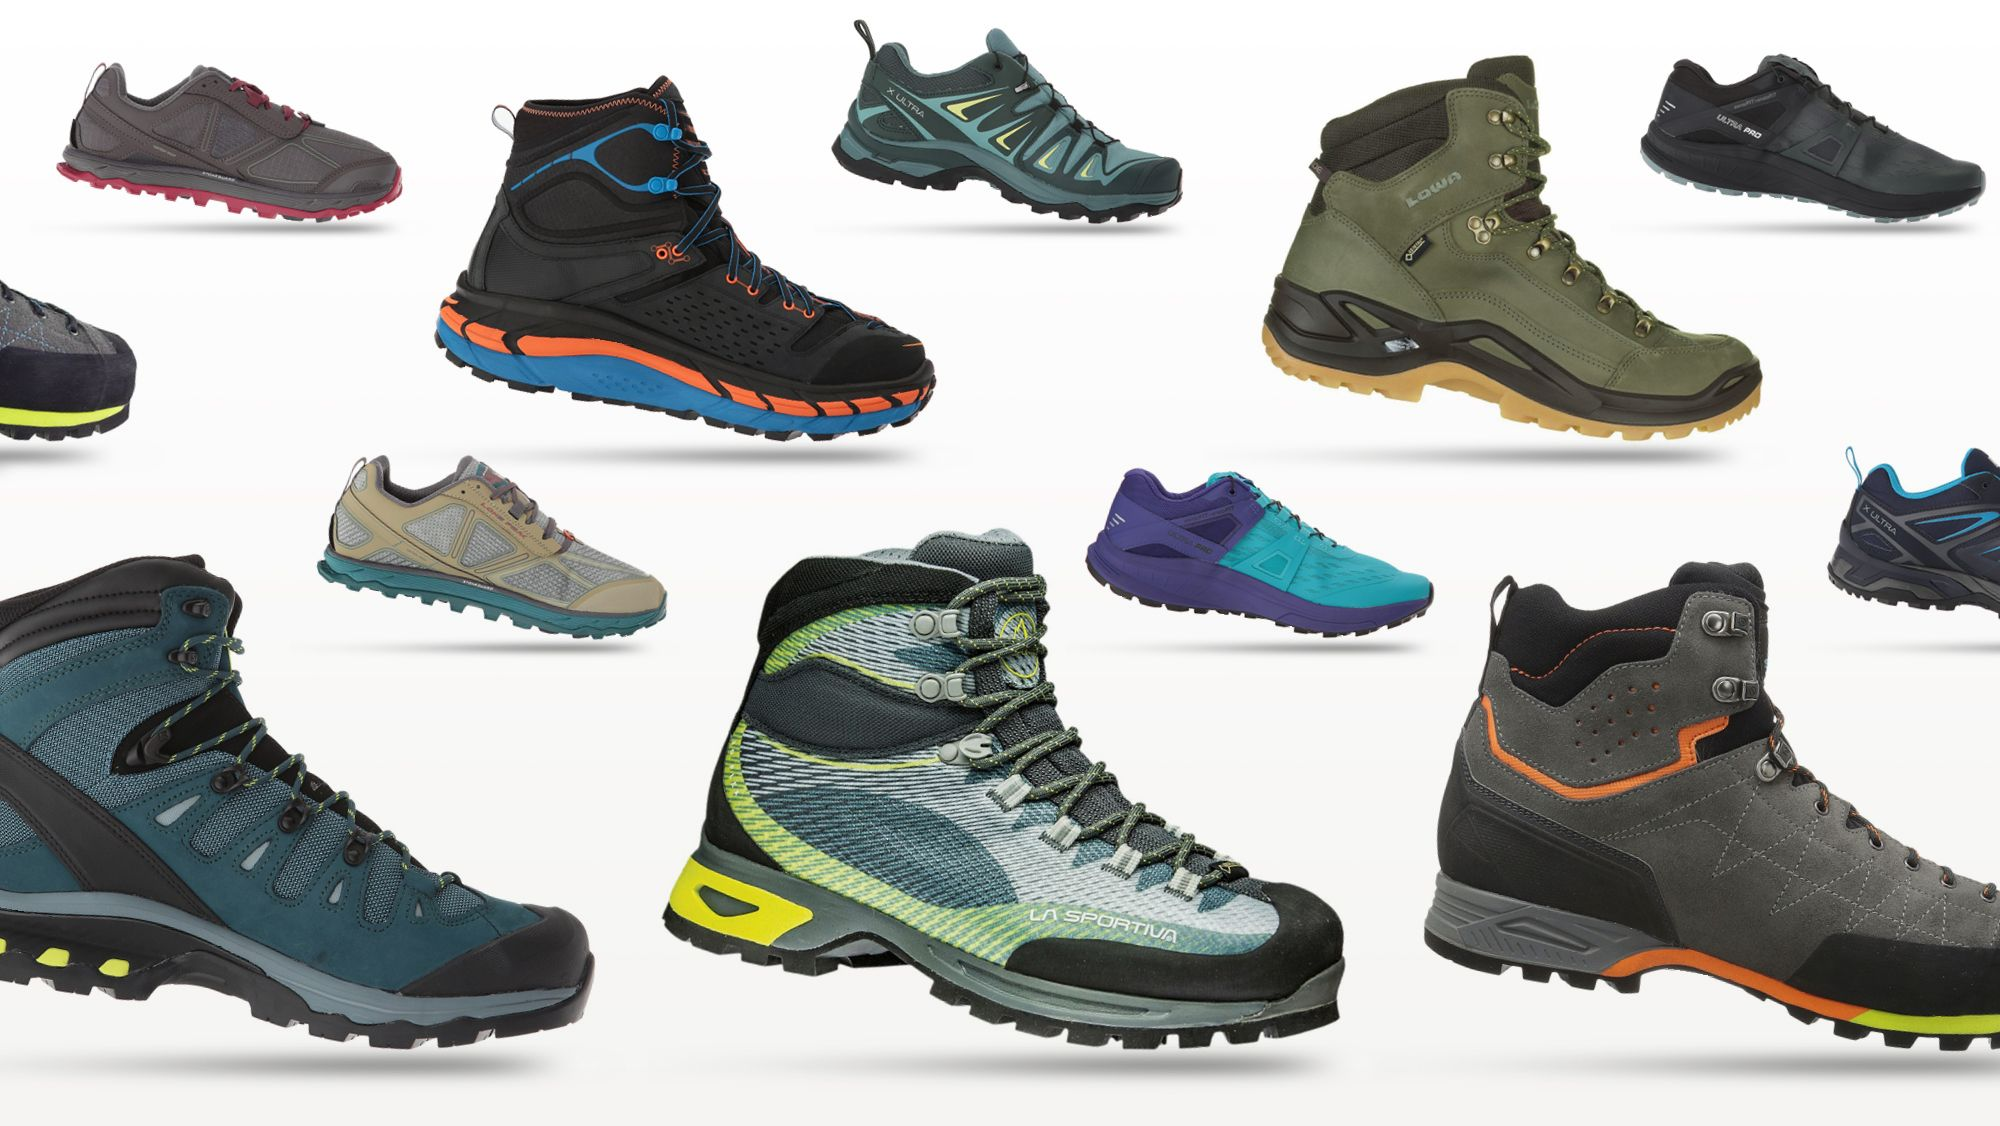 on sale 40dd9 b248f Best Hiking Boots - Hiking Boot Reviews 2019